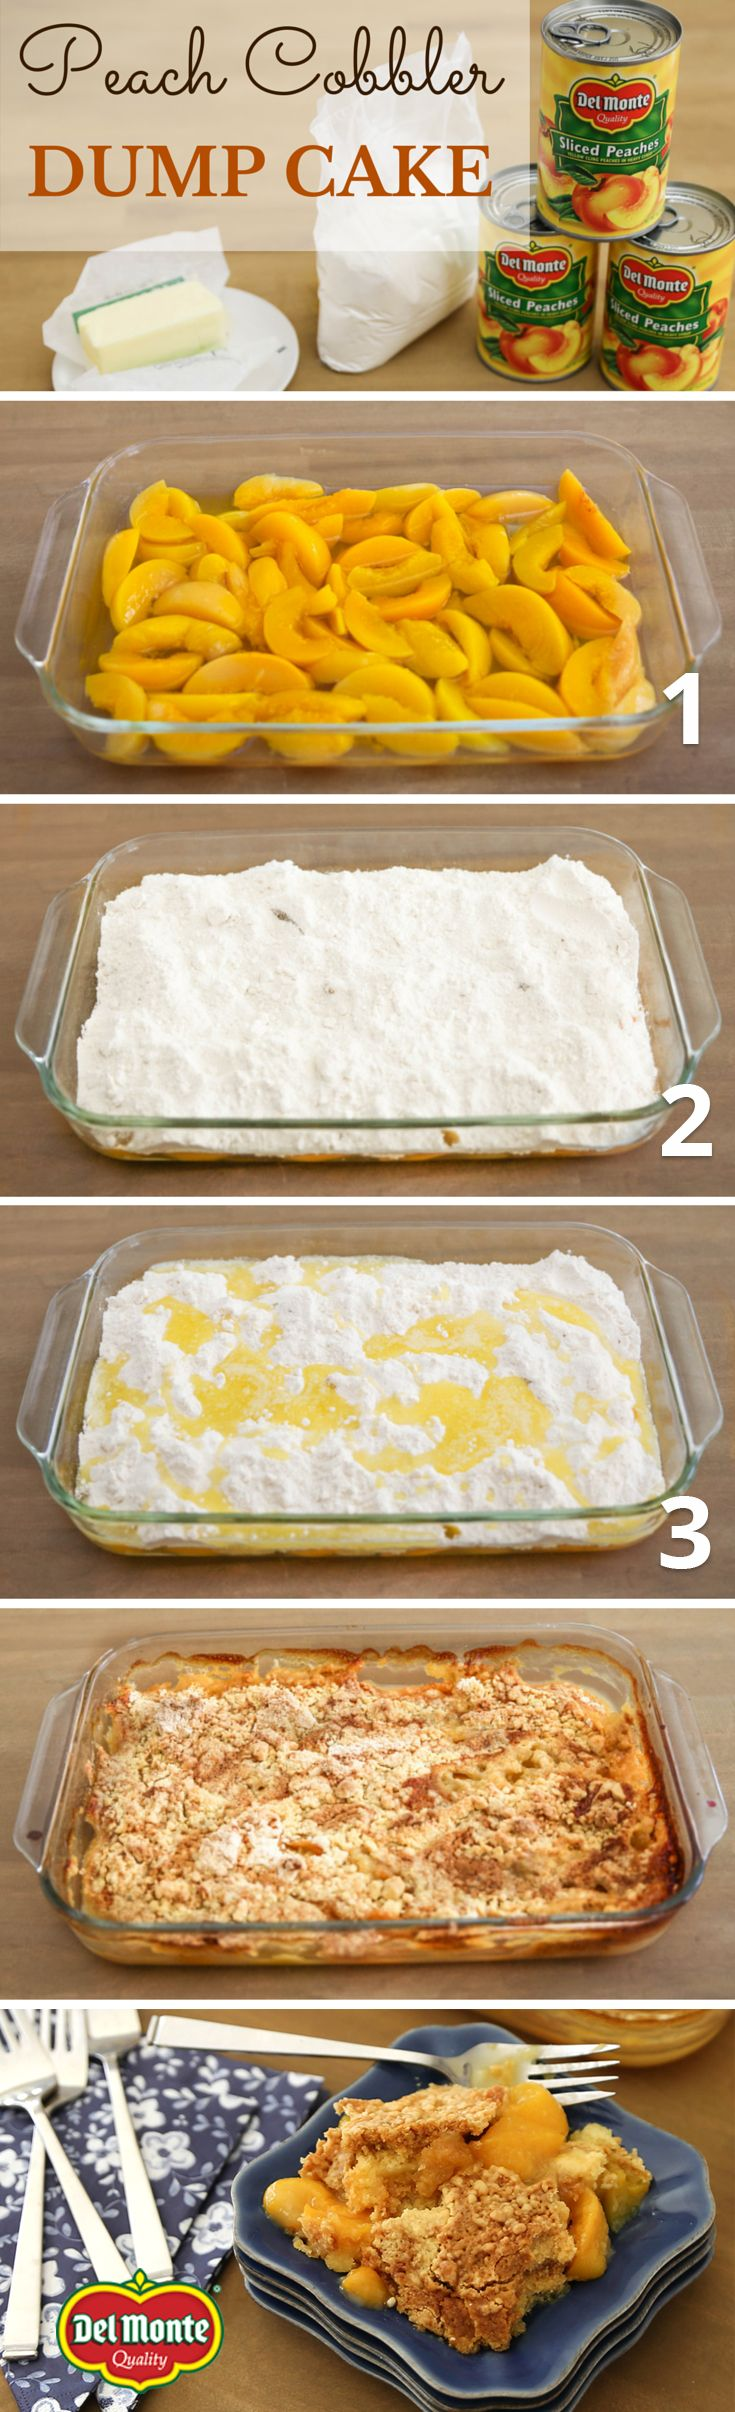 Peach Cobbler Dump Cake - The winner of the Del Monte Fan Favorite Dump Cake Poll! A super-simple sweet comfort food, made with 3 ingredients! No mixer, no eggs! Just layer fruit, cake mix and butter right in the baking dish, and a delicious dessert bakes up that's somewhere between a cobber and a fruit crisp. Keep it good and simple, or try a variation to twist up the fun. Click for recipe and directions.